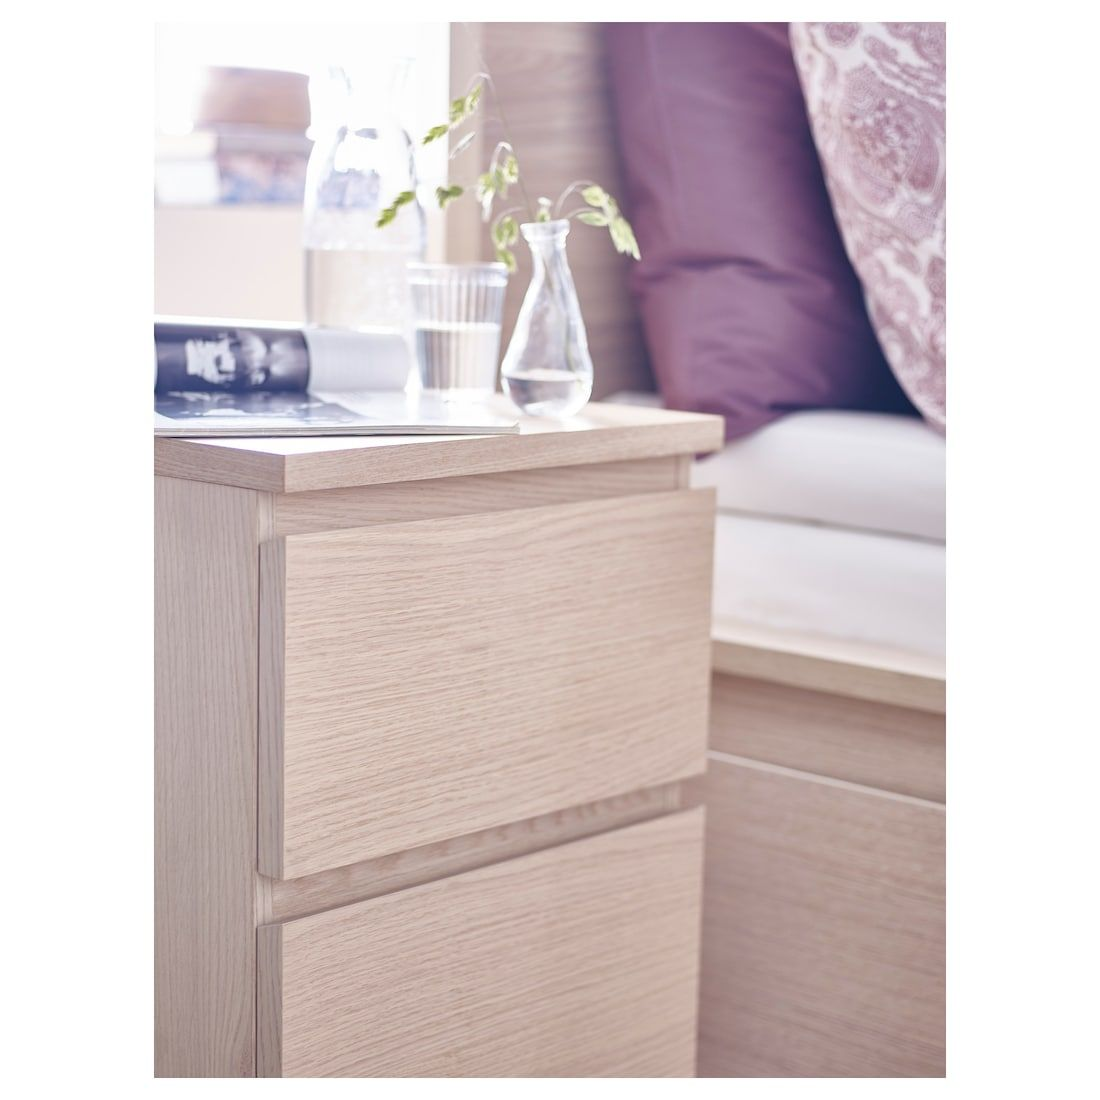 Malm 2 Drawer Chest White Stained Oak Veneer 15 3 4x21 5 8